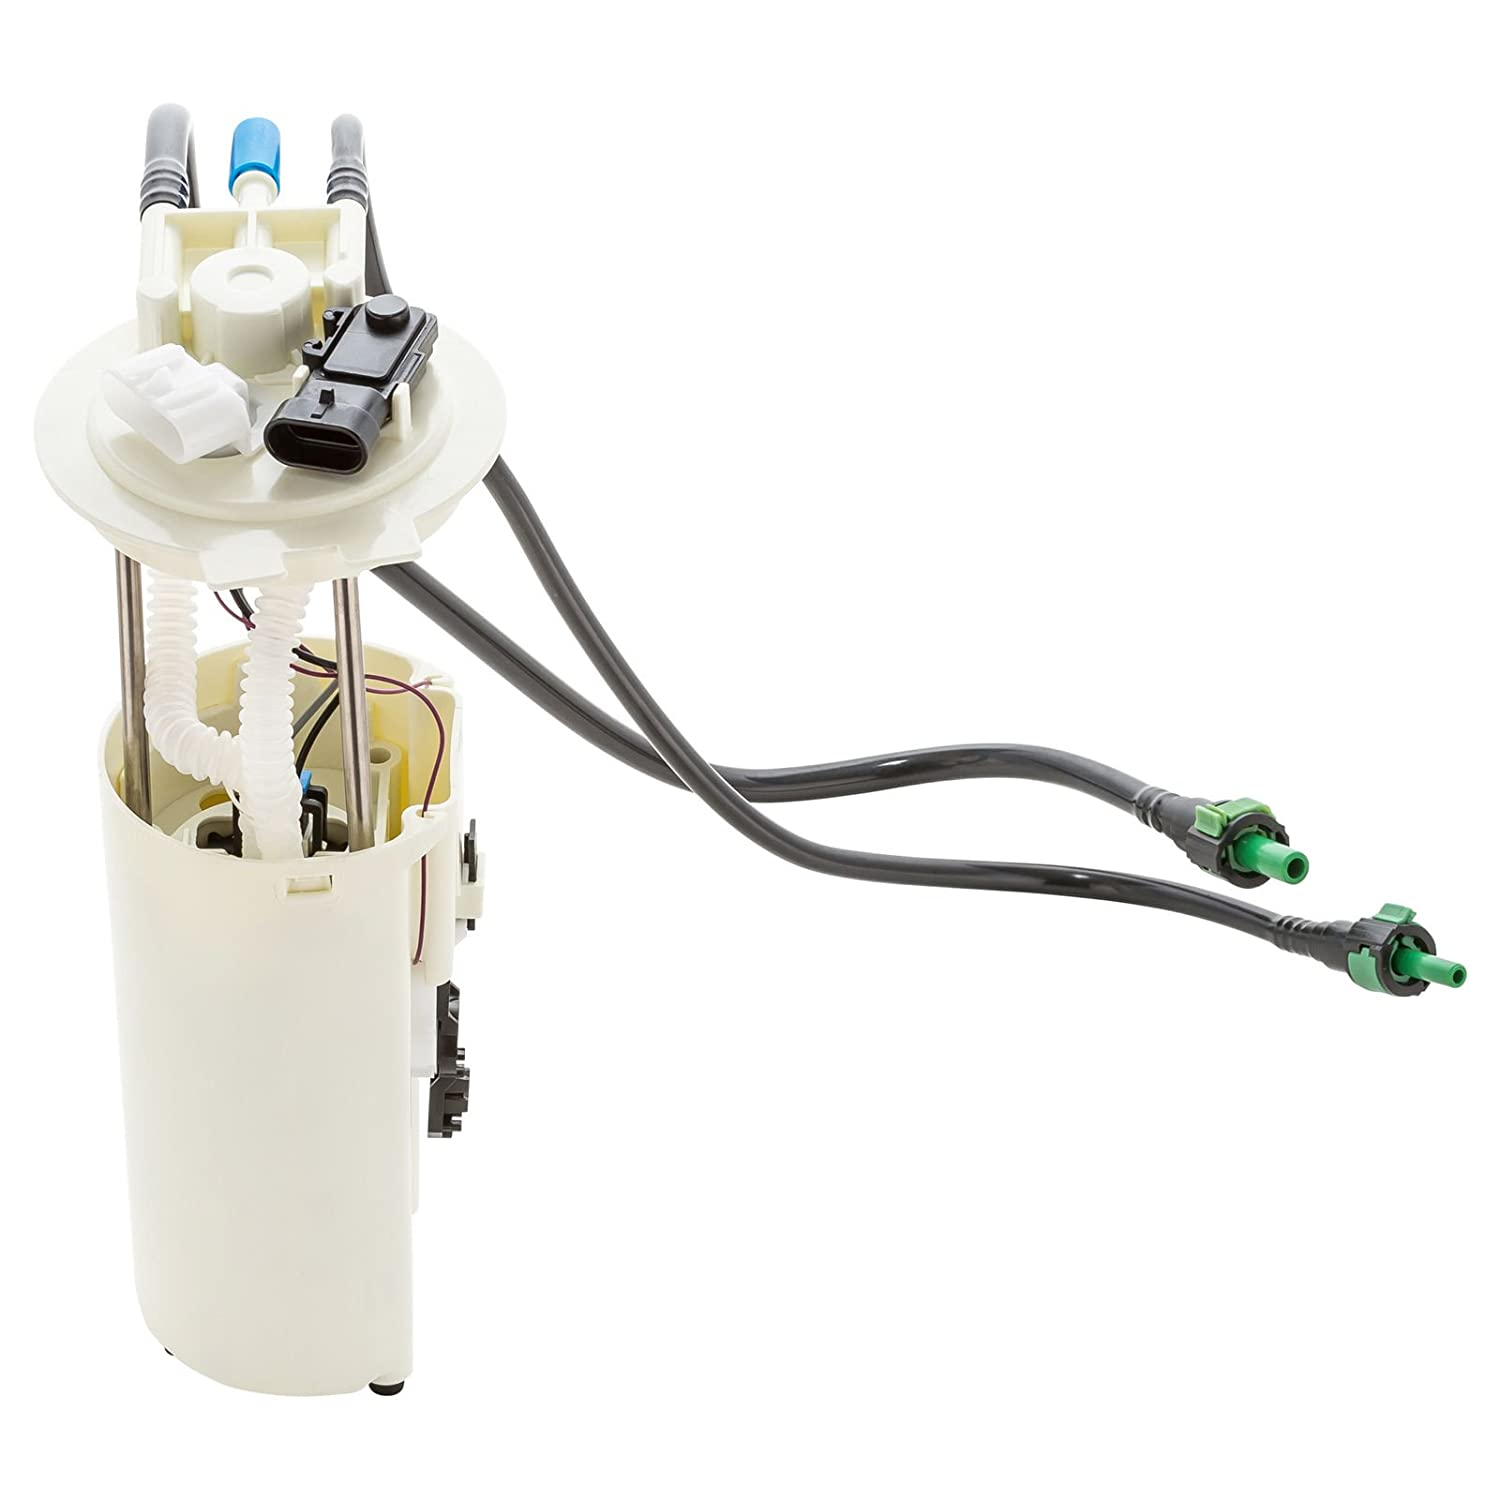 Fuel Pump For 00 05 Pontiac Grand Am Chevy Cavalier 94 Buick Century Filter Sunfire Fits E3507m 88957239 Automotive